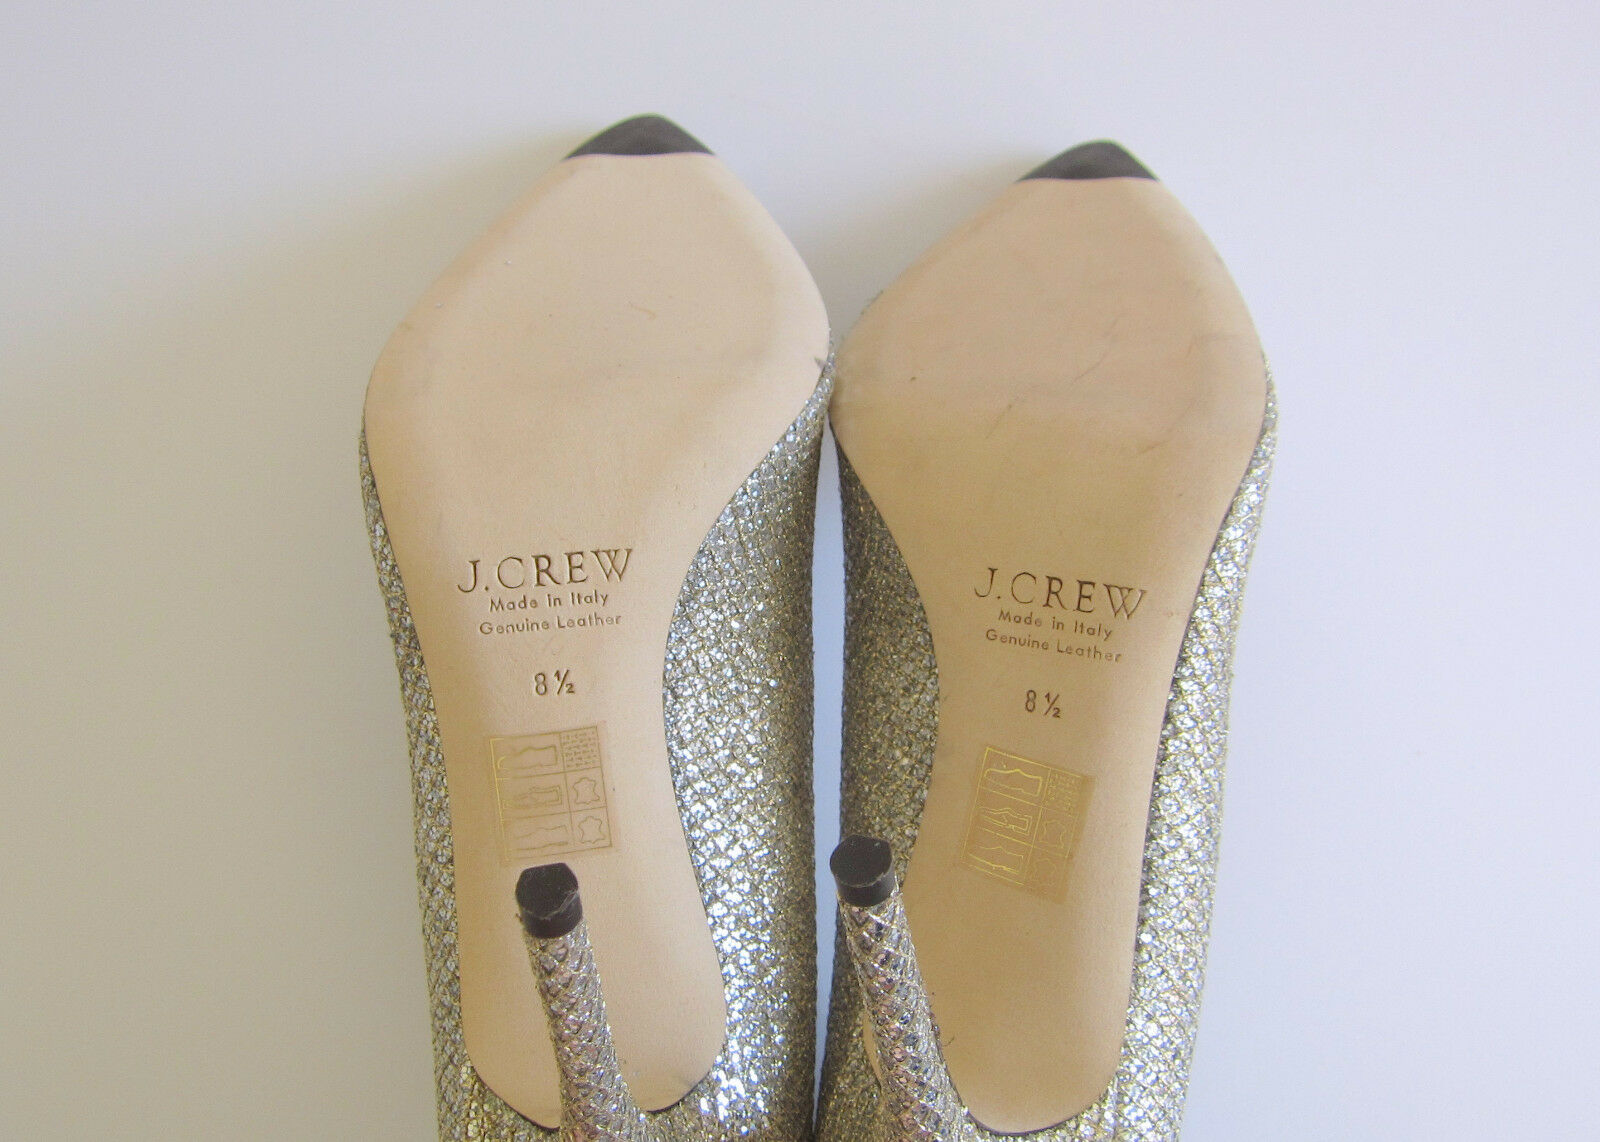 NEW J.Crew Roxie Roxie Roxie Glitter Pumps Size 8.5 gold Silver Item E0784  278 (SOLD OUT) 8f2fc0